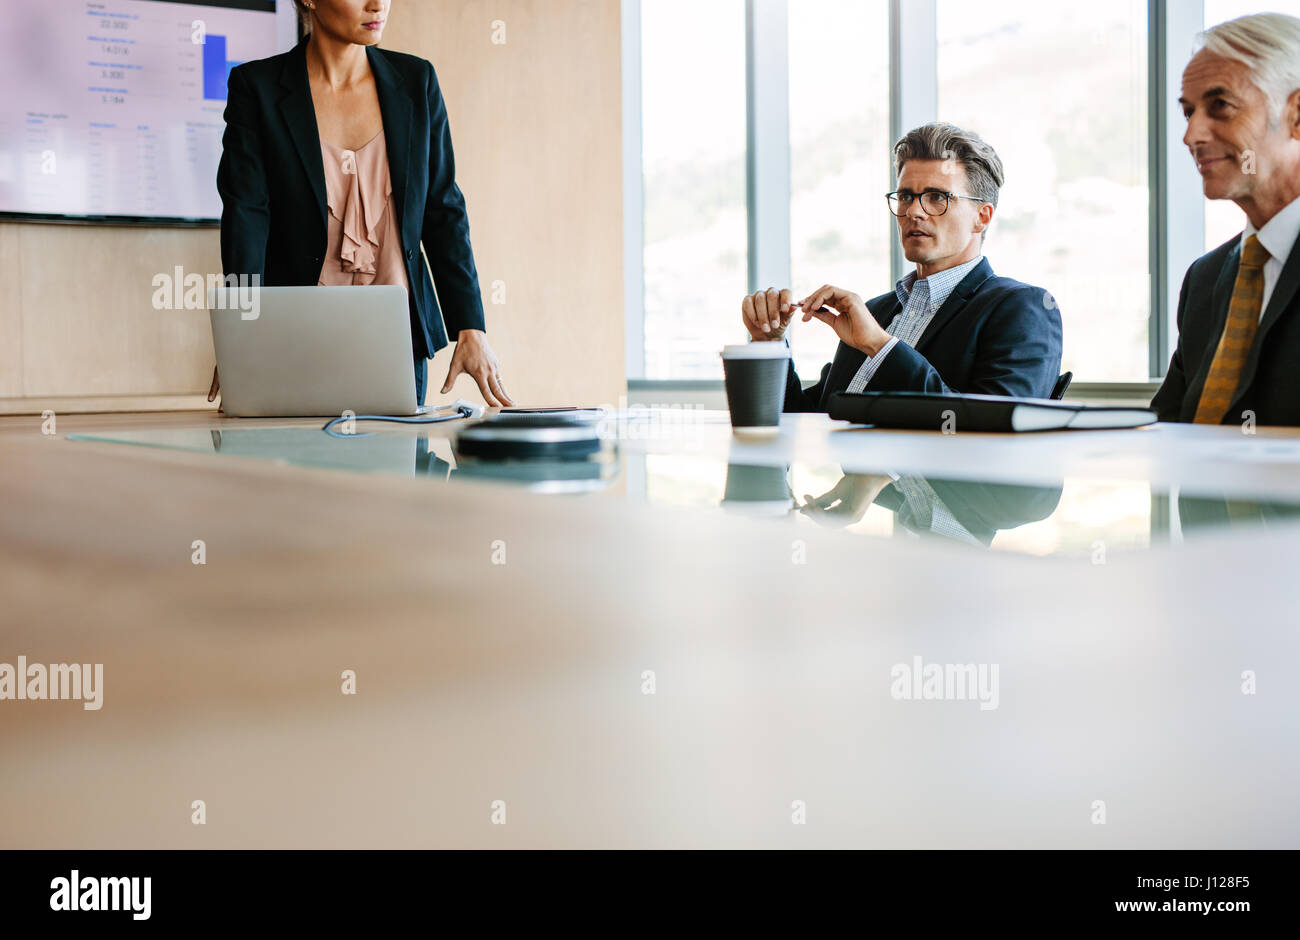 Businesspeople sitting at board room and discussing new strategies. Businessman and businesswoman meeting in conference - Stock Image